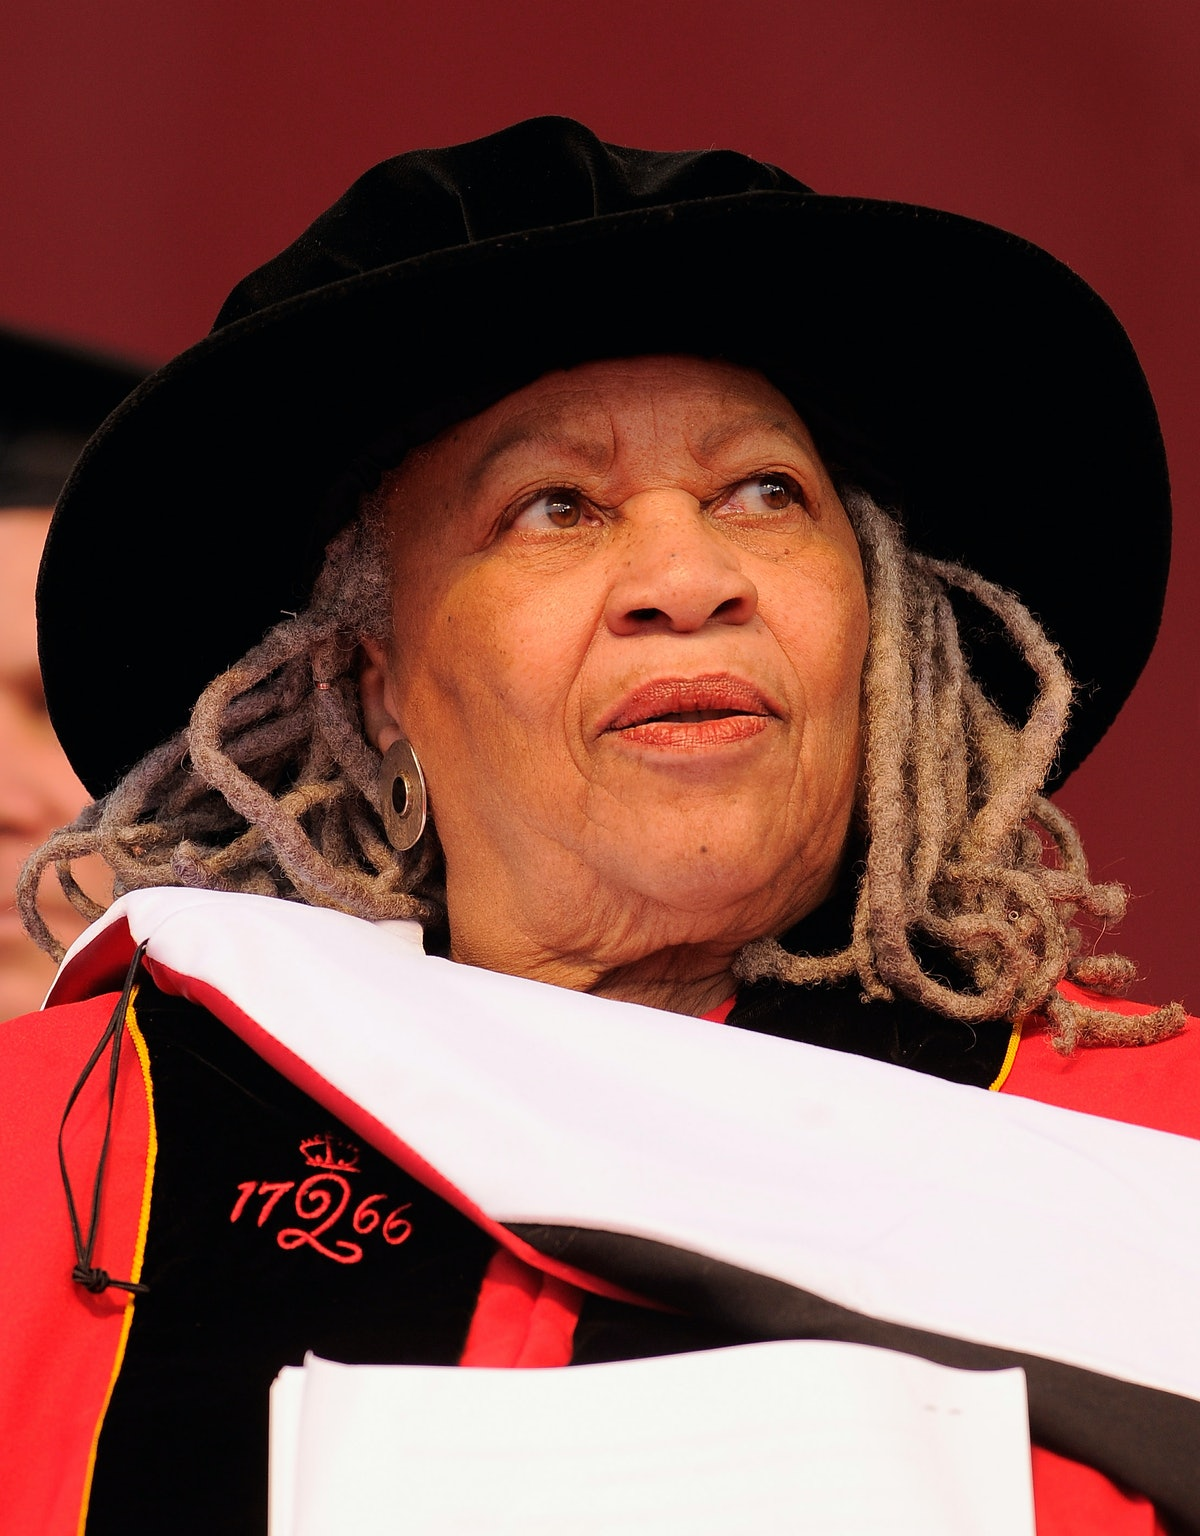 toni morrison changing the game The toni morrison society is a non-profit literary organization that consists of  scholars and lay readers of morrison's works  the point of view keeps changing.